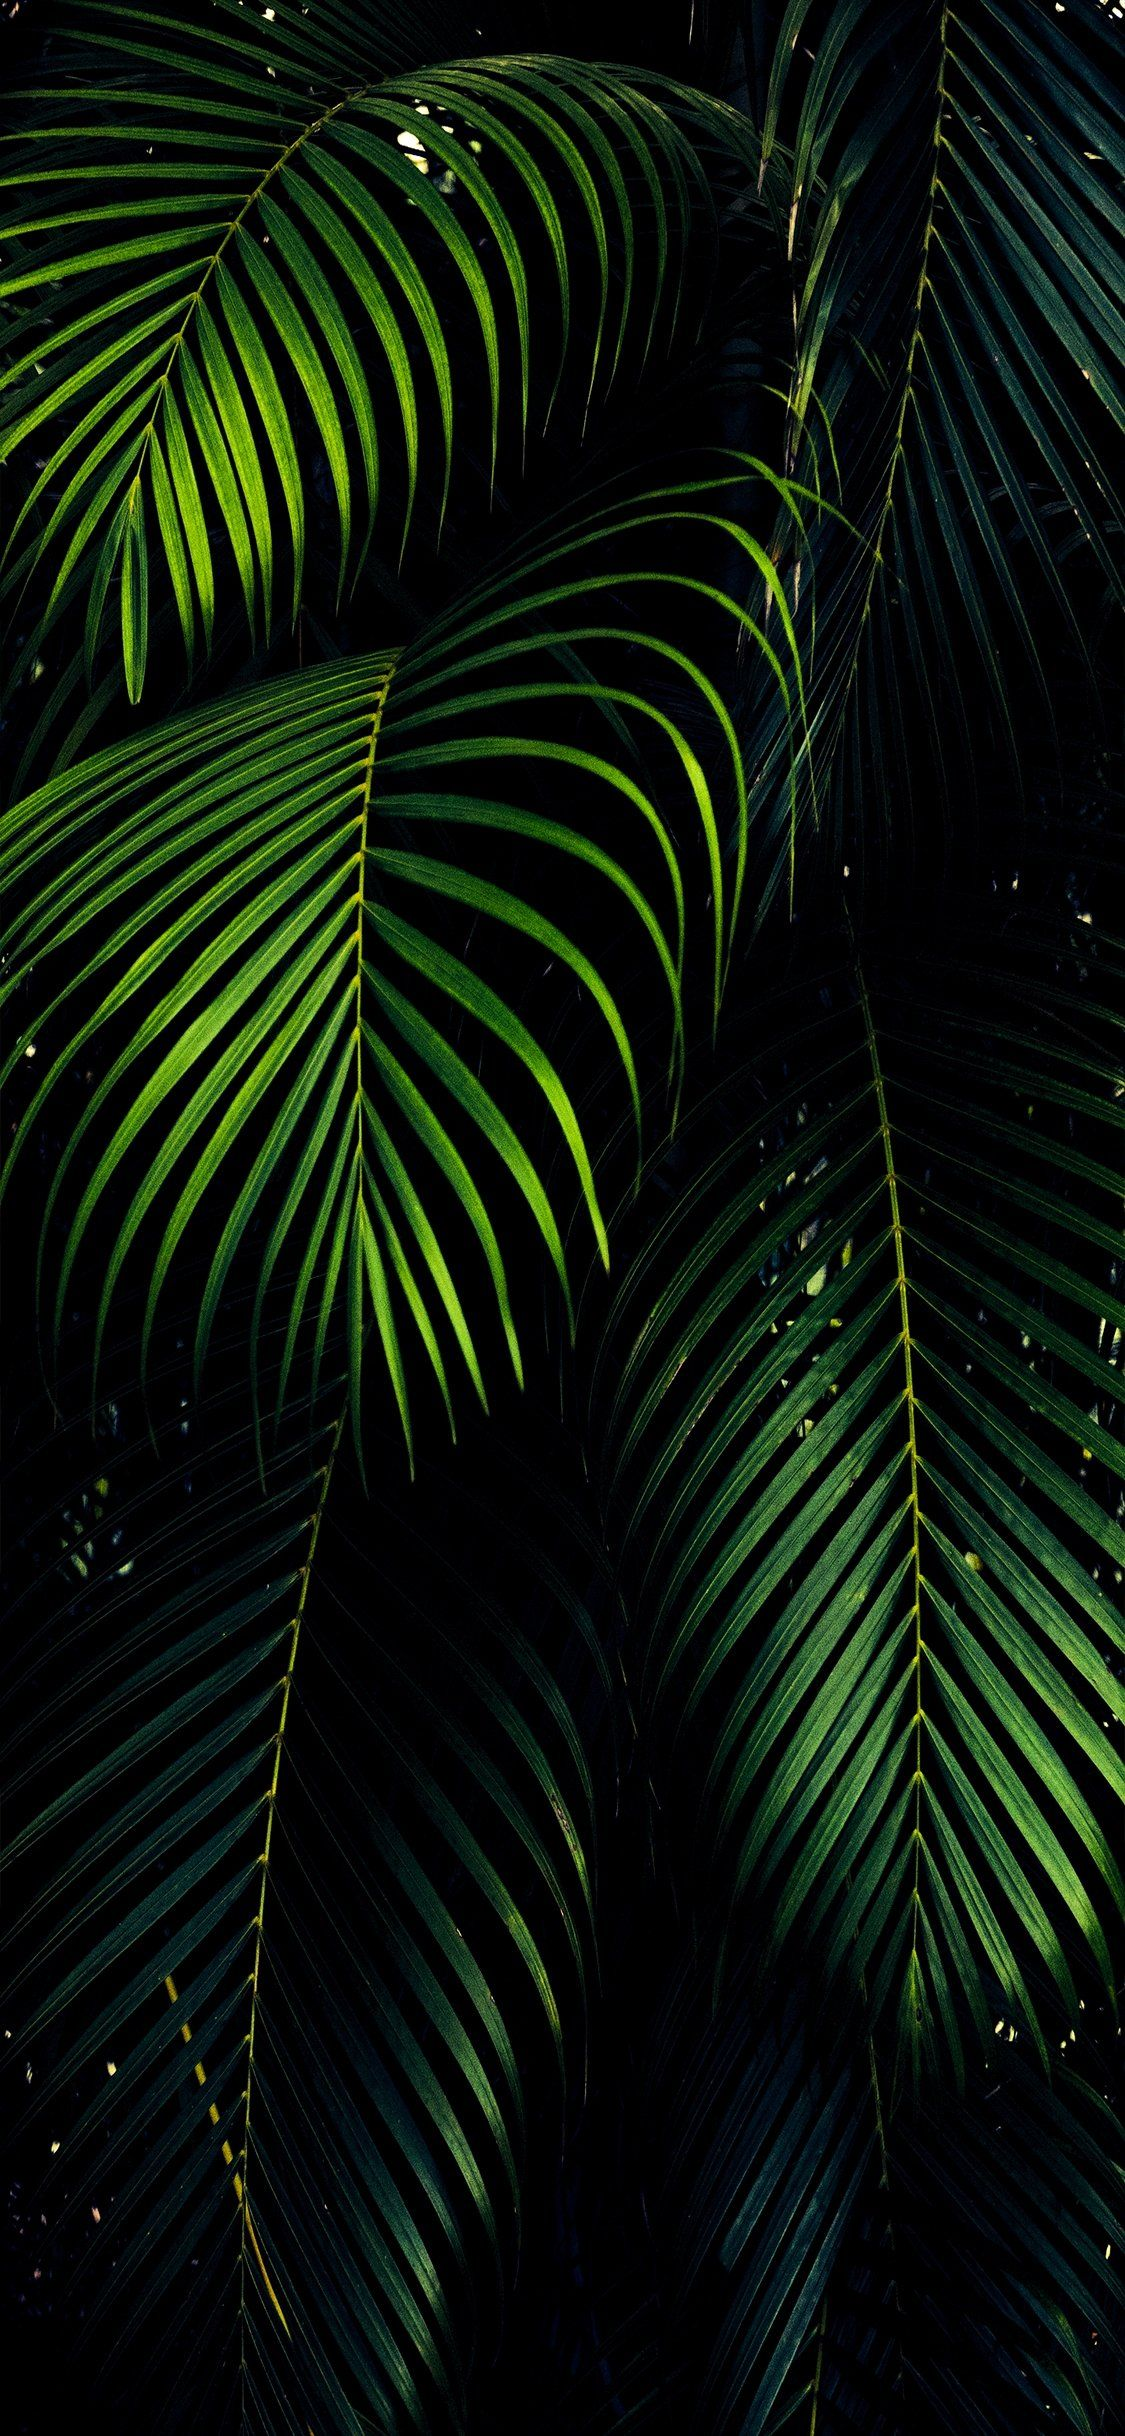 27 Oled Wallpaper Iphone 11 Pro Iphone Wallpaper Green Aesthetic Cool Wallpapers For Phones